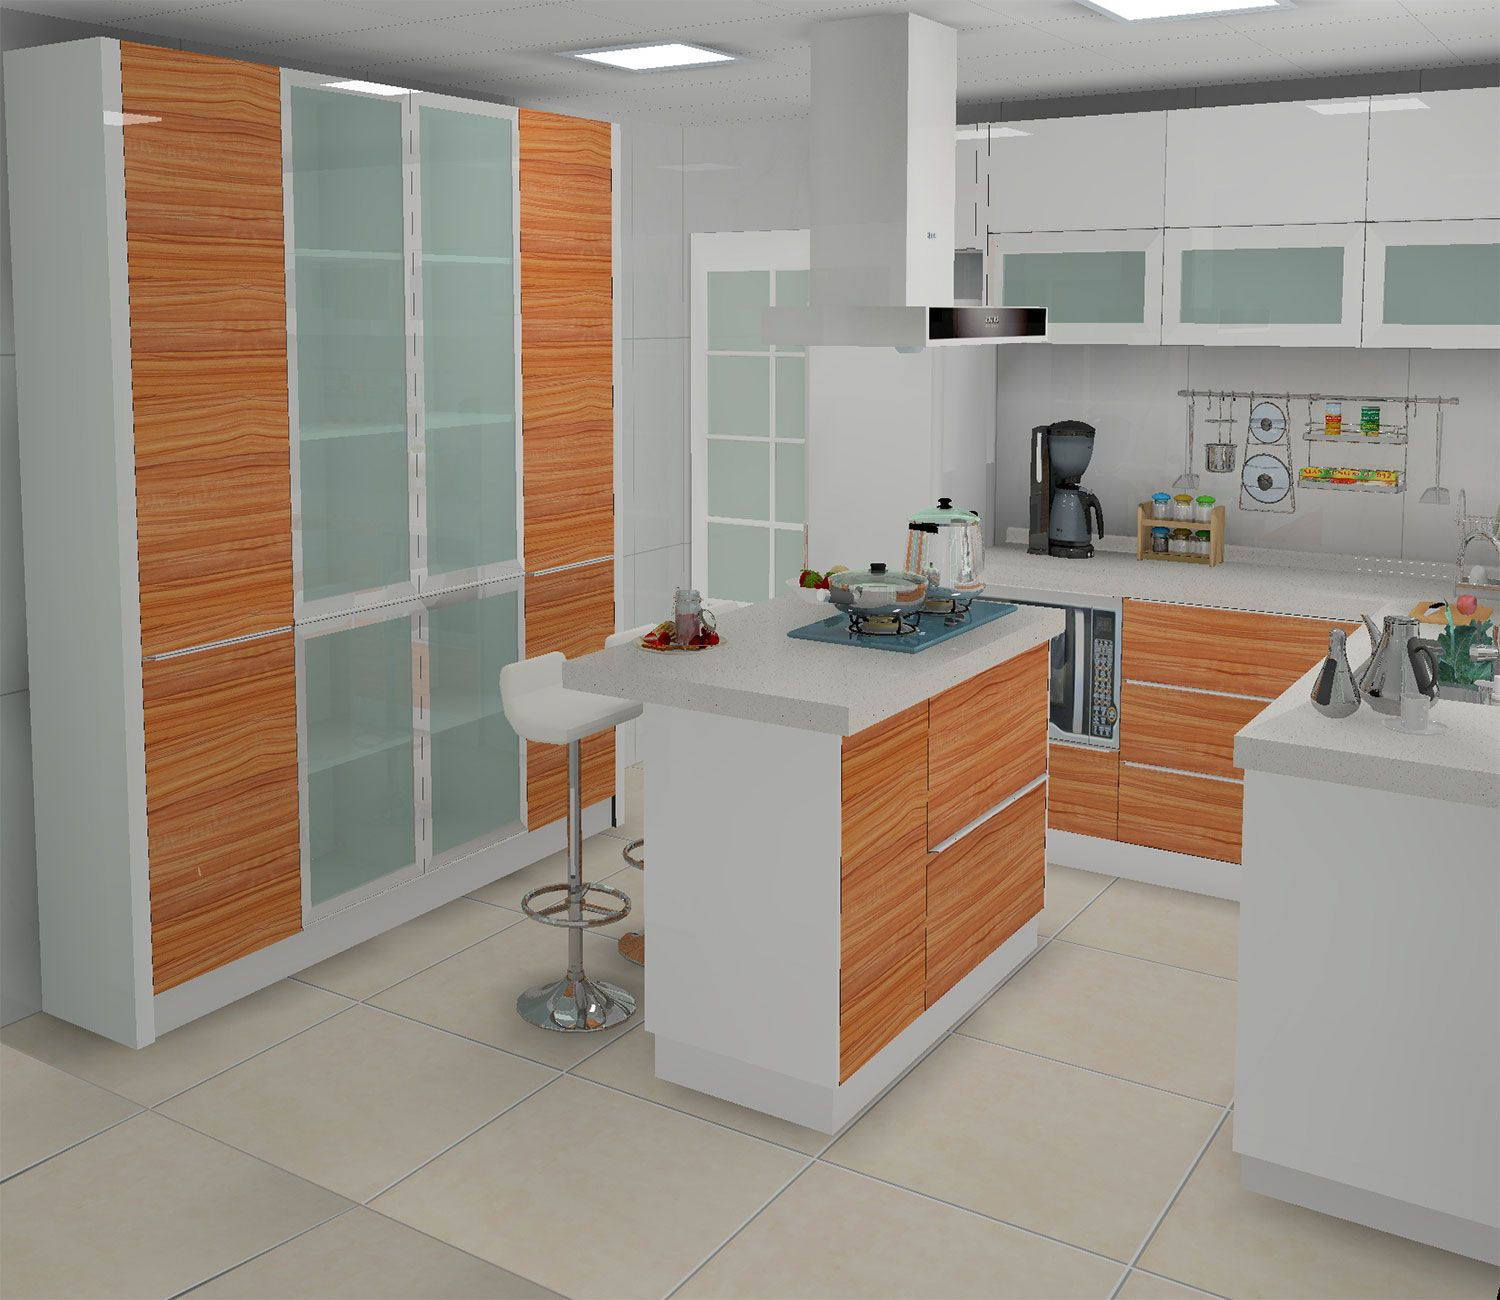 High Gloss Kitchen Cabinet Design Bedroom Wardrobe Design From Daban Kitchen Cabinet Design Gloss Kitchen Cabinets Kitchen Models